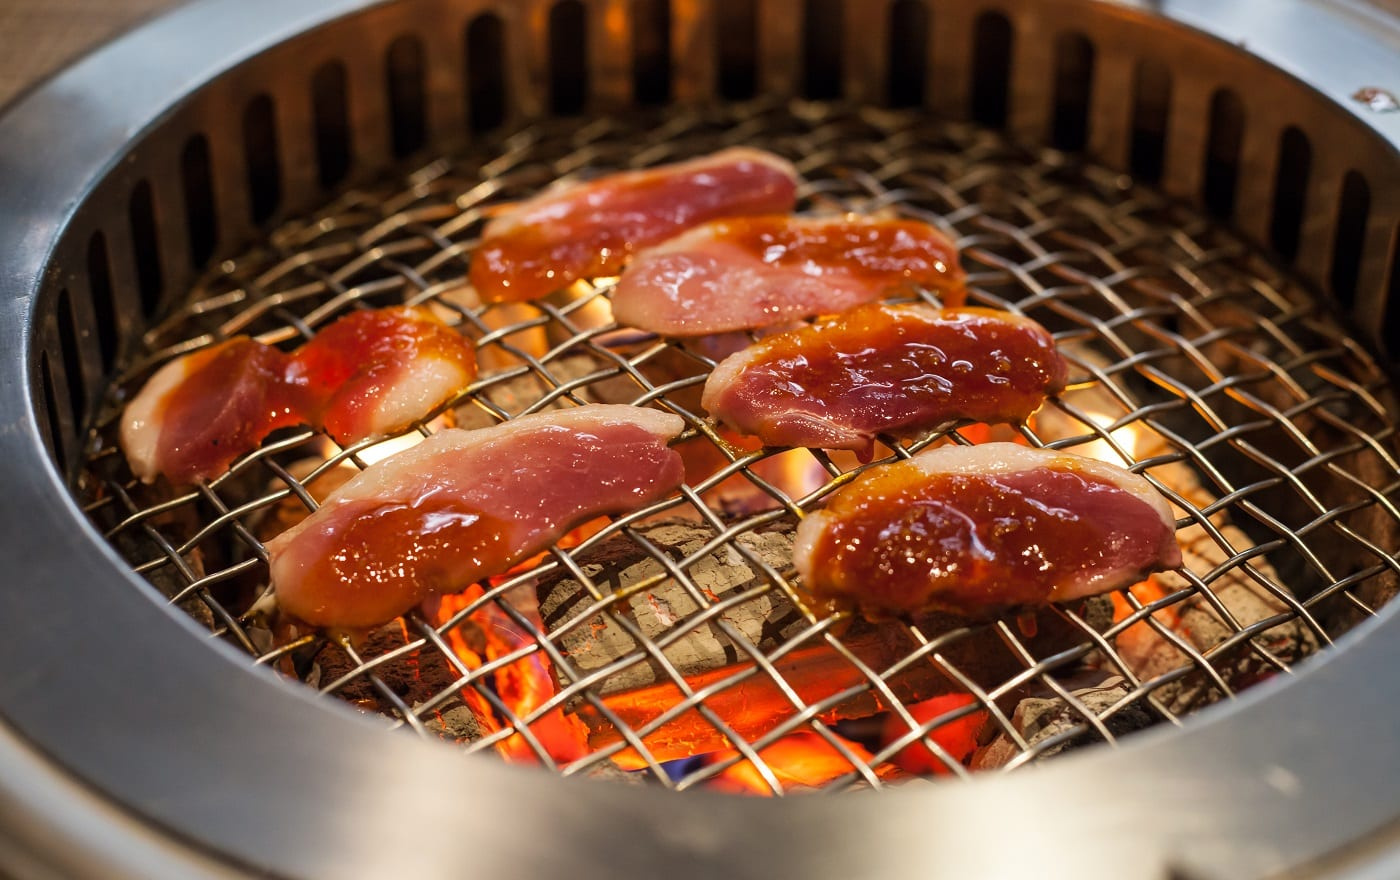 roasting duck meat and vegetable food on Glowing and Flaming hot natural wood charcoal lump frying mesh pan in food restaurant BBQ grill stove background.